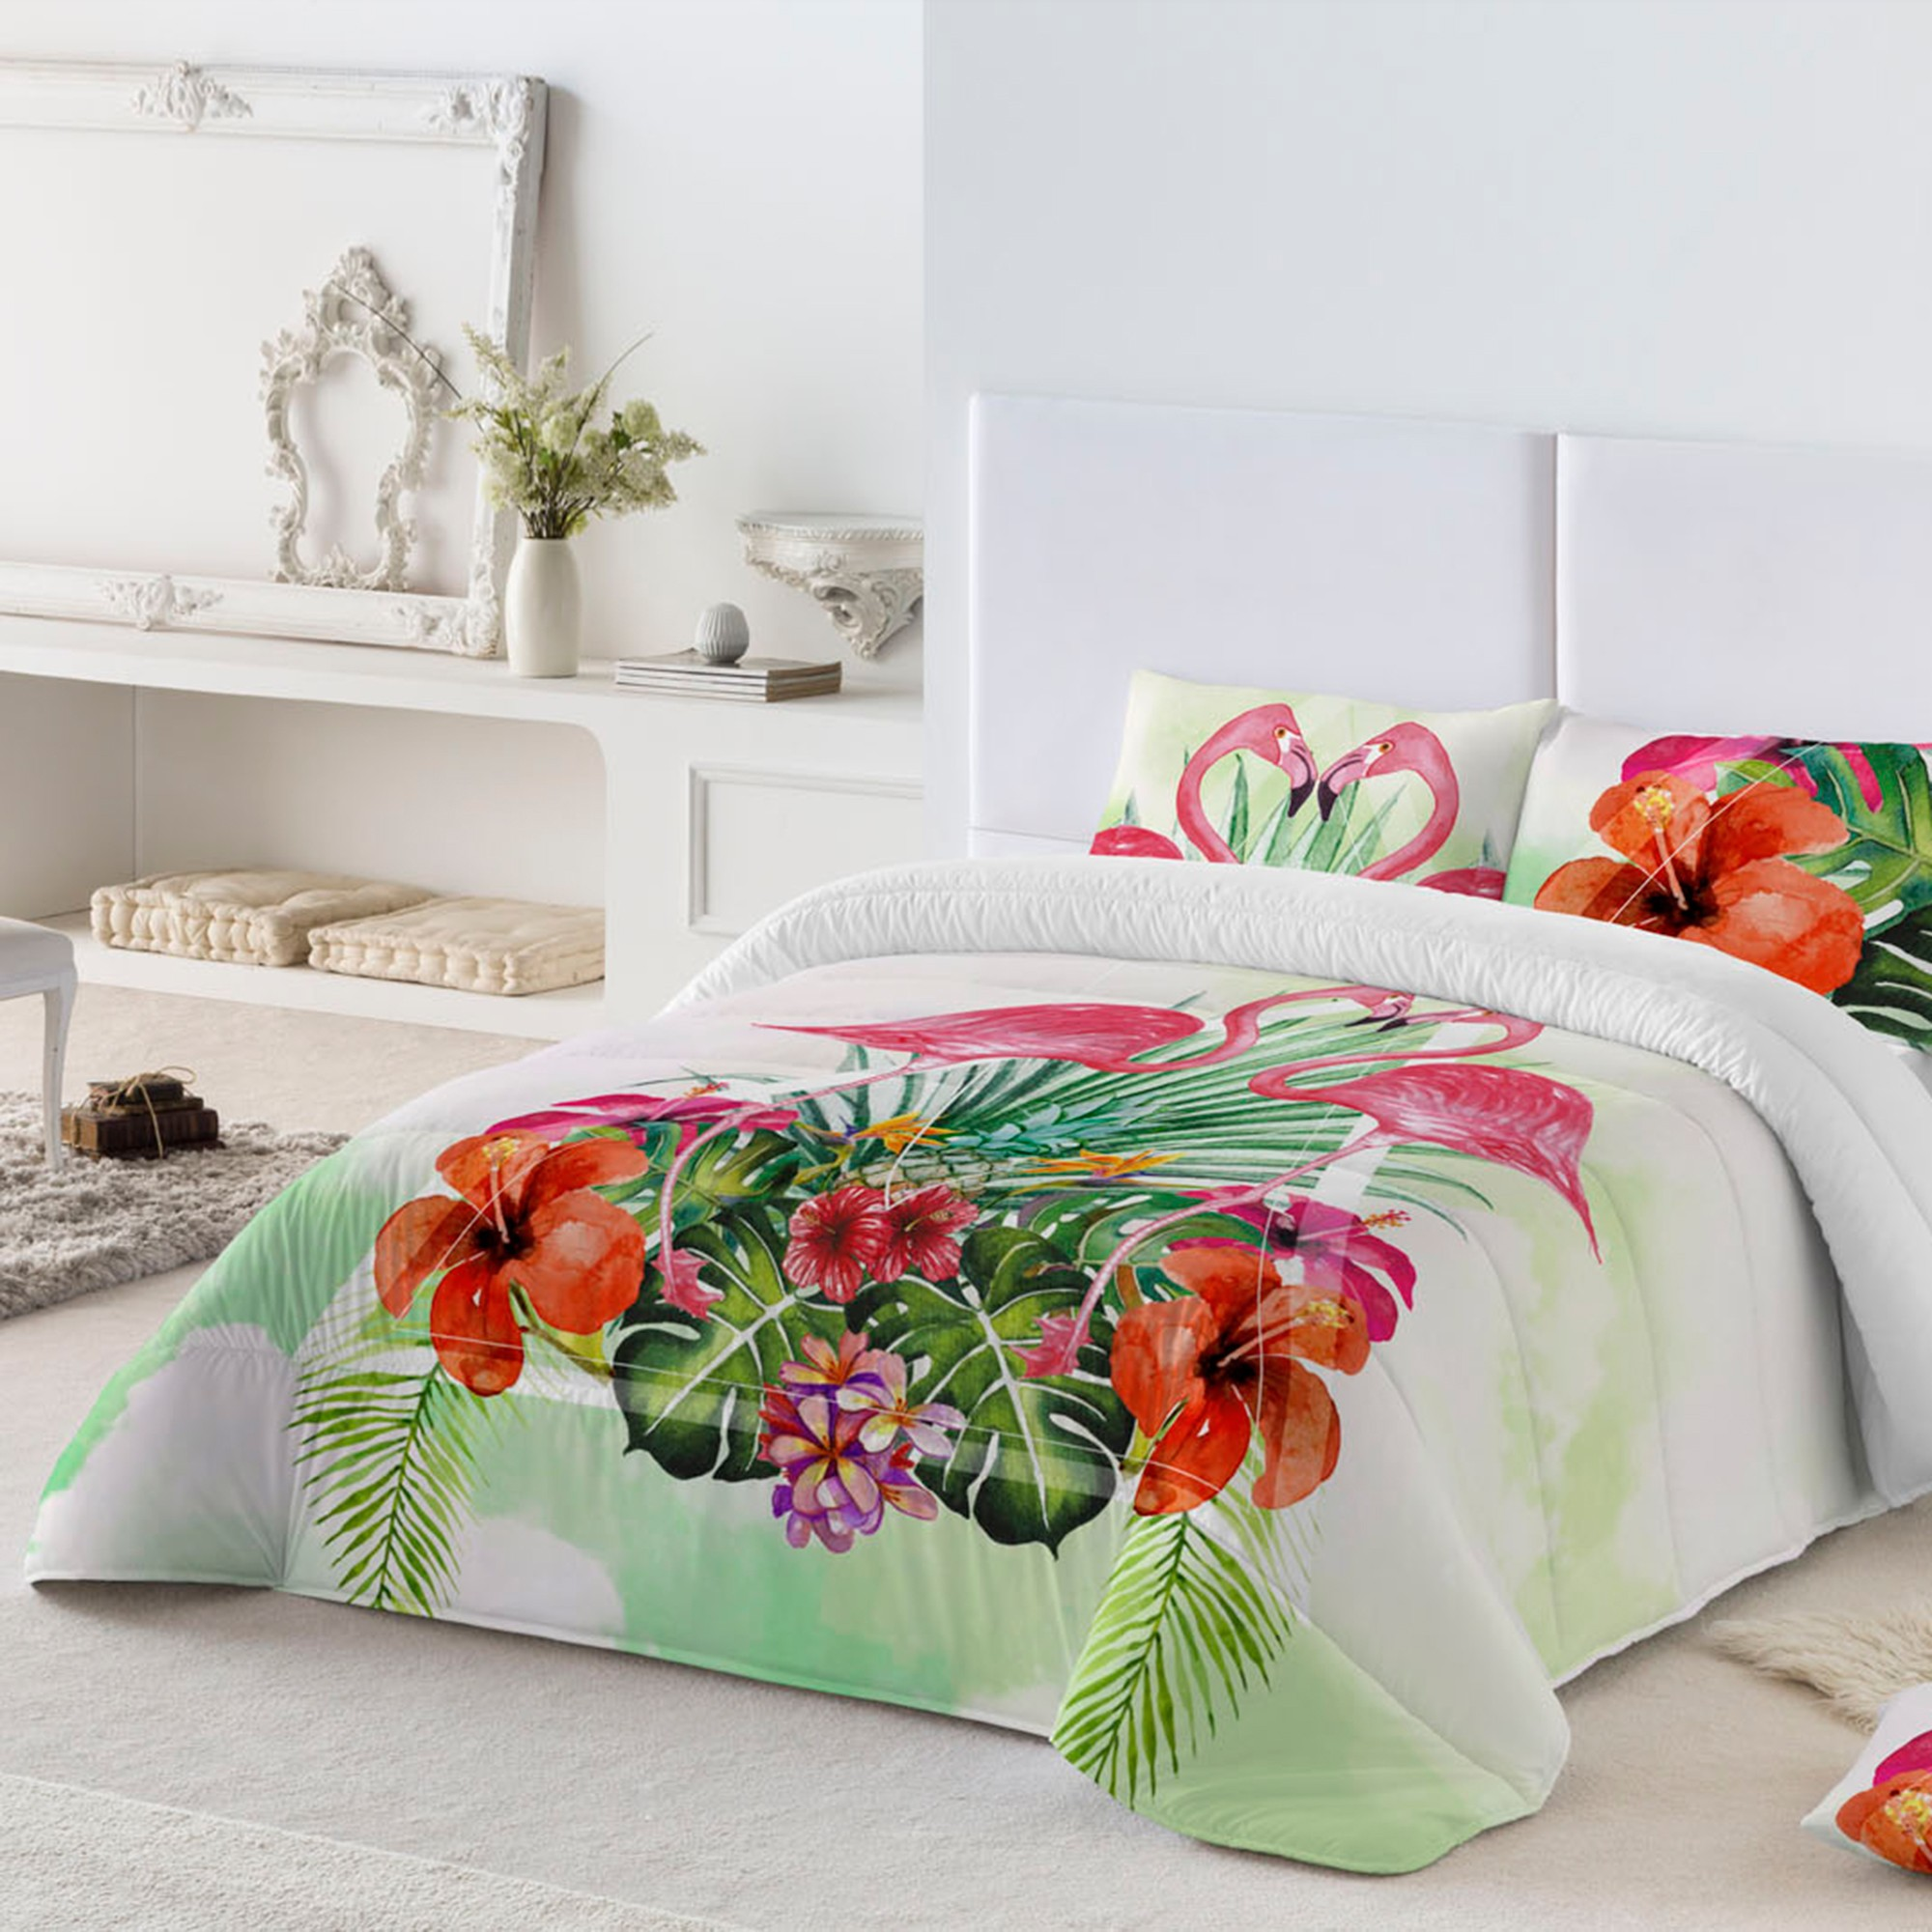 couette microfibre imprim flamants roses 200g m blancheporte. Black Bedroom Furniture Sets. Home Design Ideas